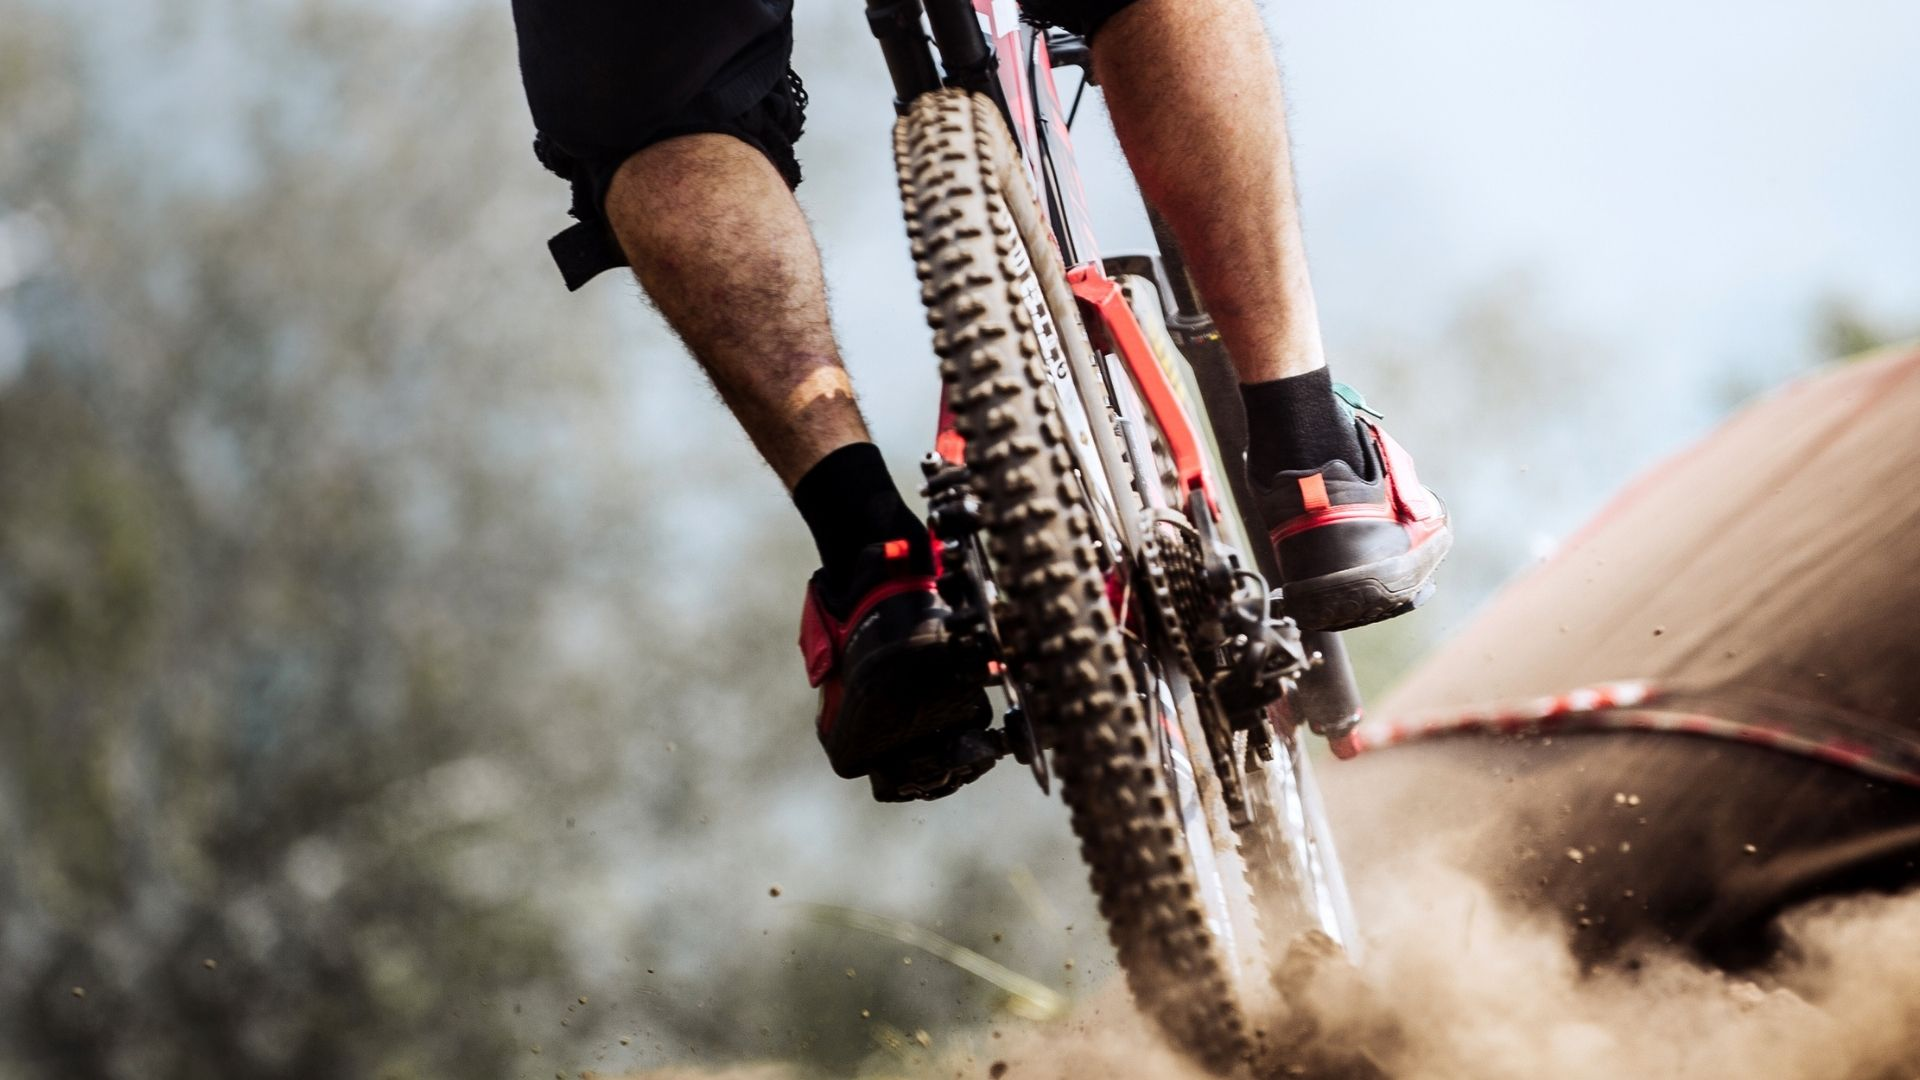 Downhill mountain bike focus on joint stress